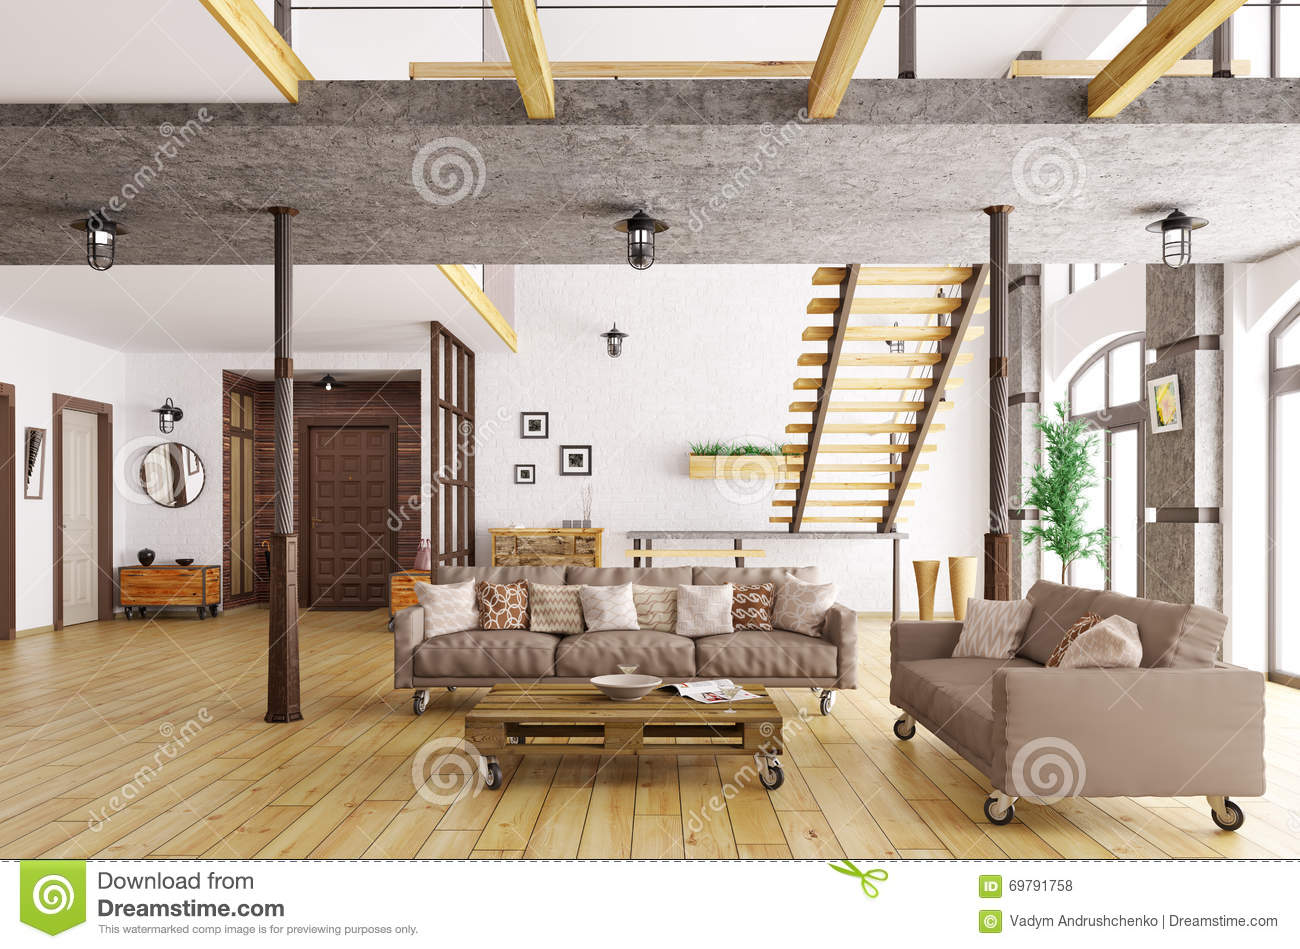 Interior of living room and hall 3d rendering stock for Living hall interior